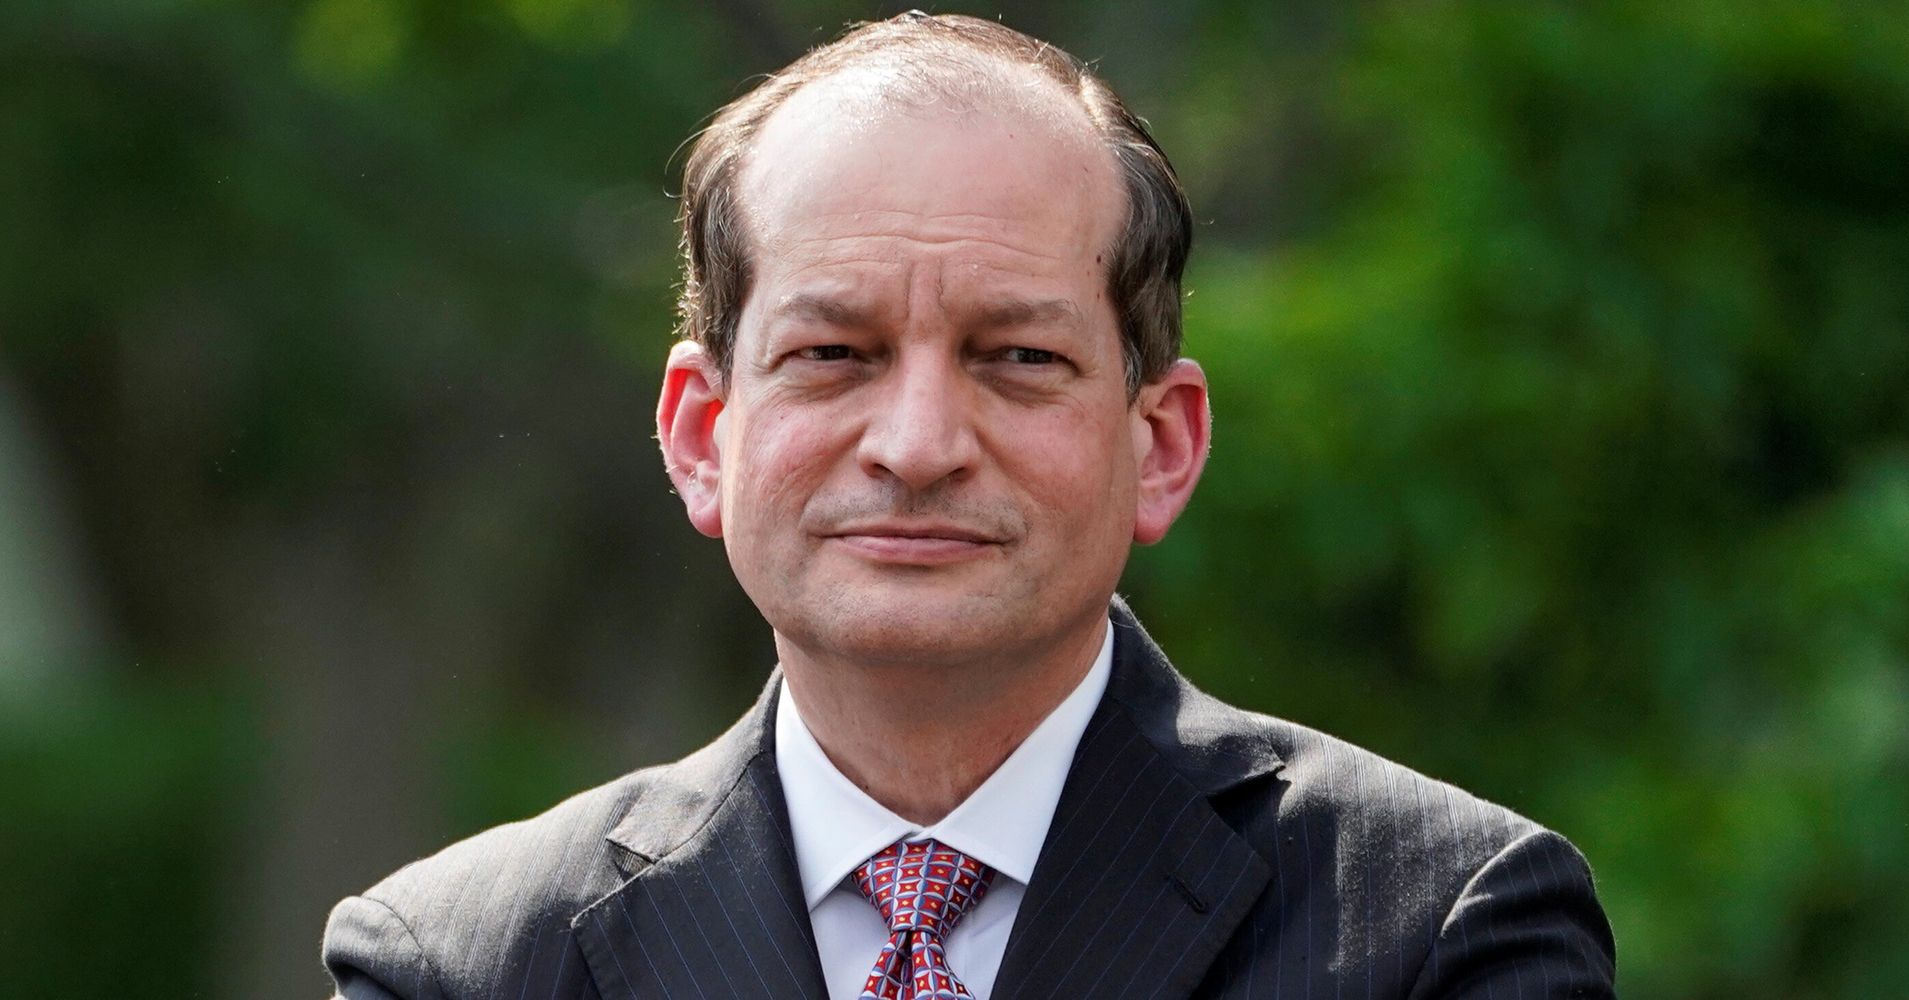 Alexander Acosta's Replacement Could Be More Aggressive In Rolling Back Regulations 1